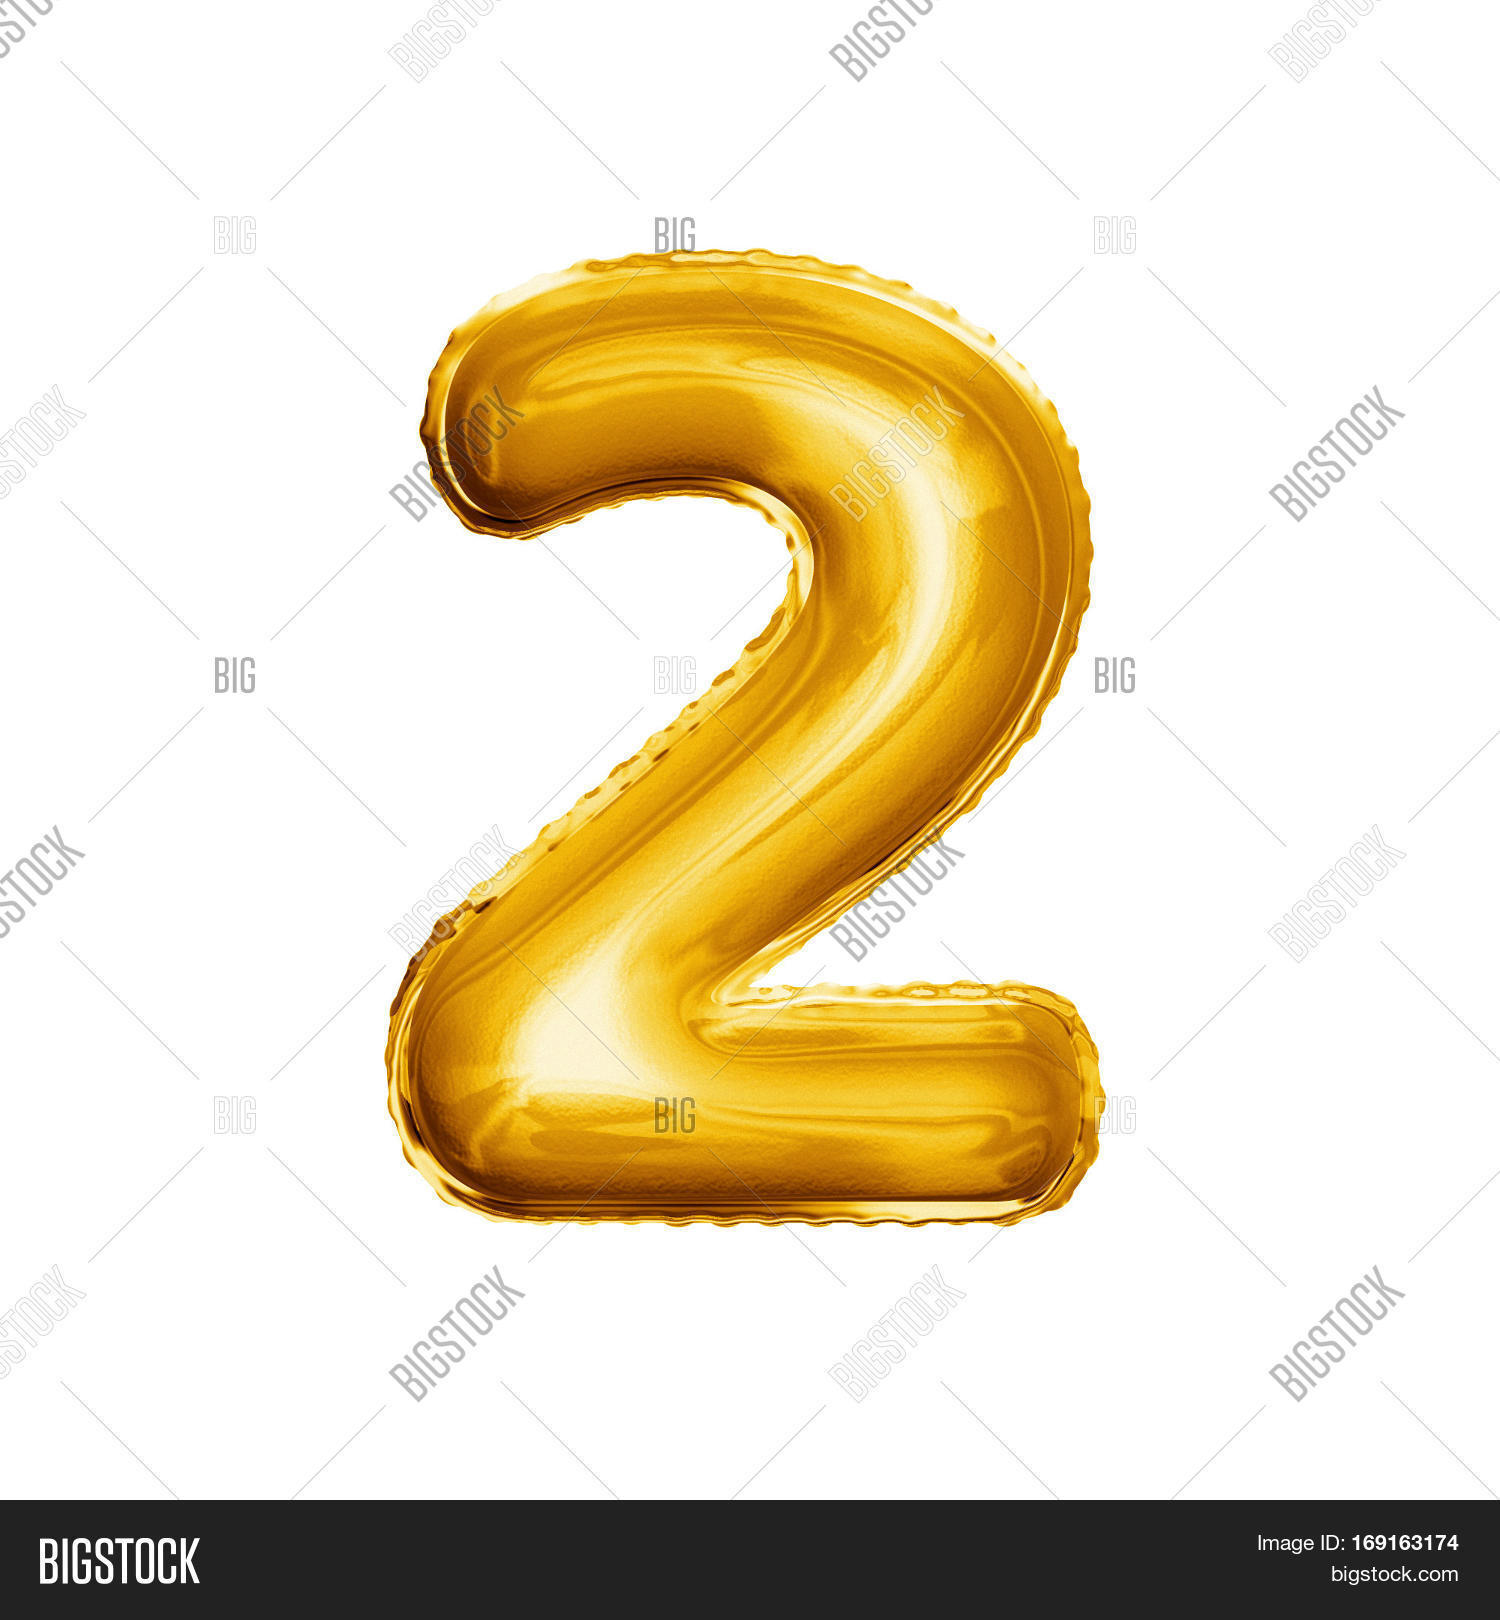 Balloon Number 2 Two Image Photo Free Trial Bigstock Baloon Realistic 3d Isolated Gold Helium Abc Alphabet Golden Font Text